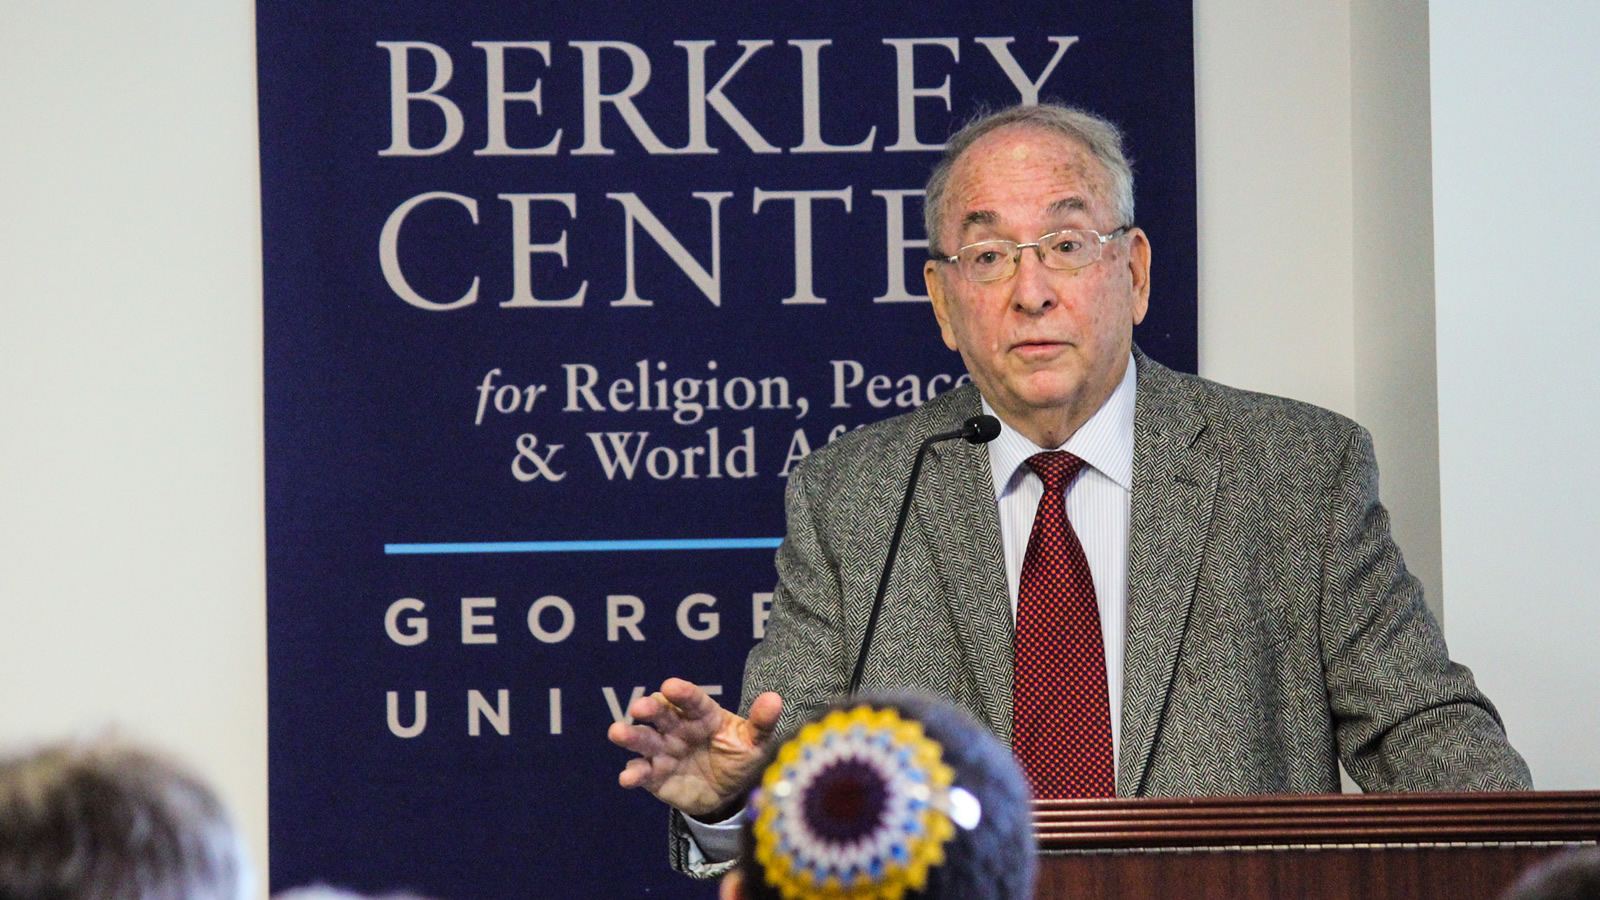 Rabbi Dr. Ron Kronish talks about his experiences with interreligious dialogue